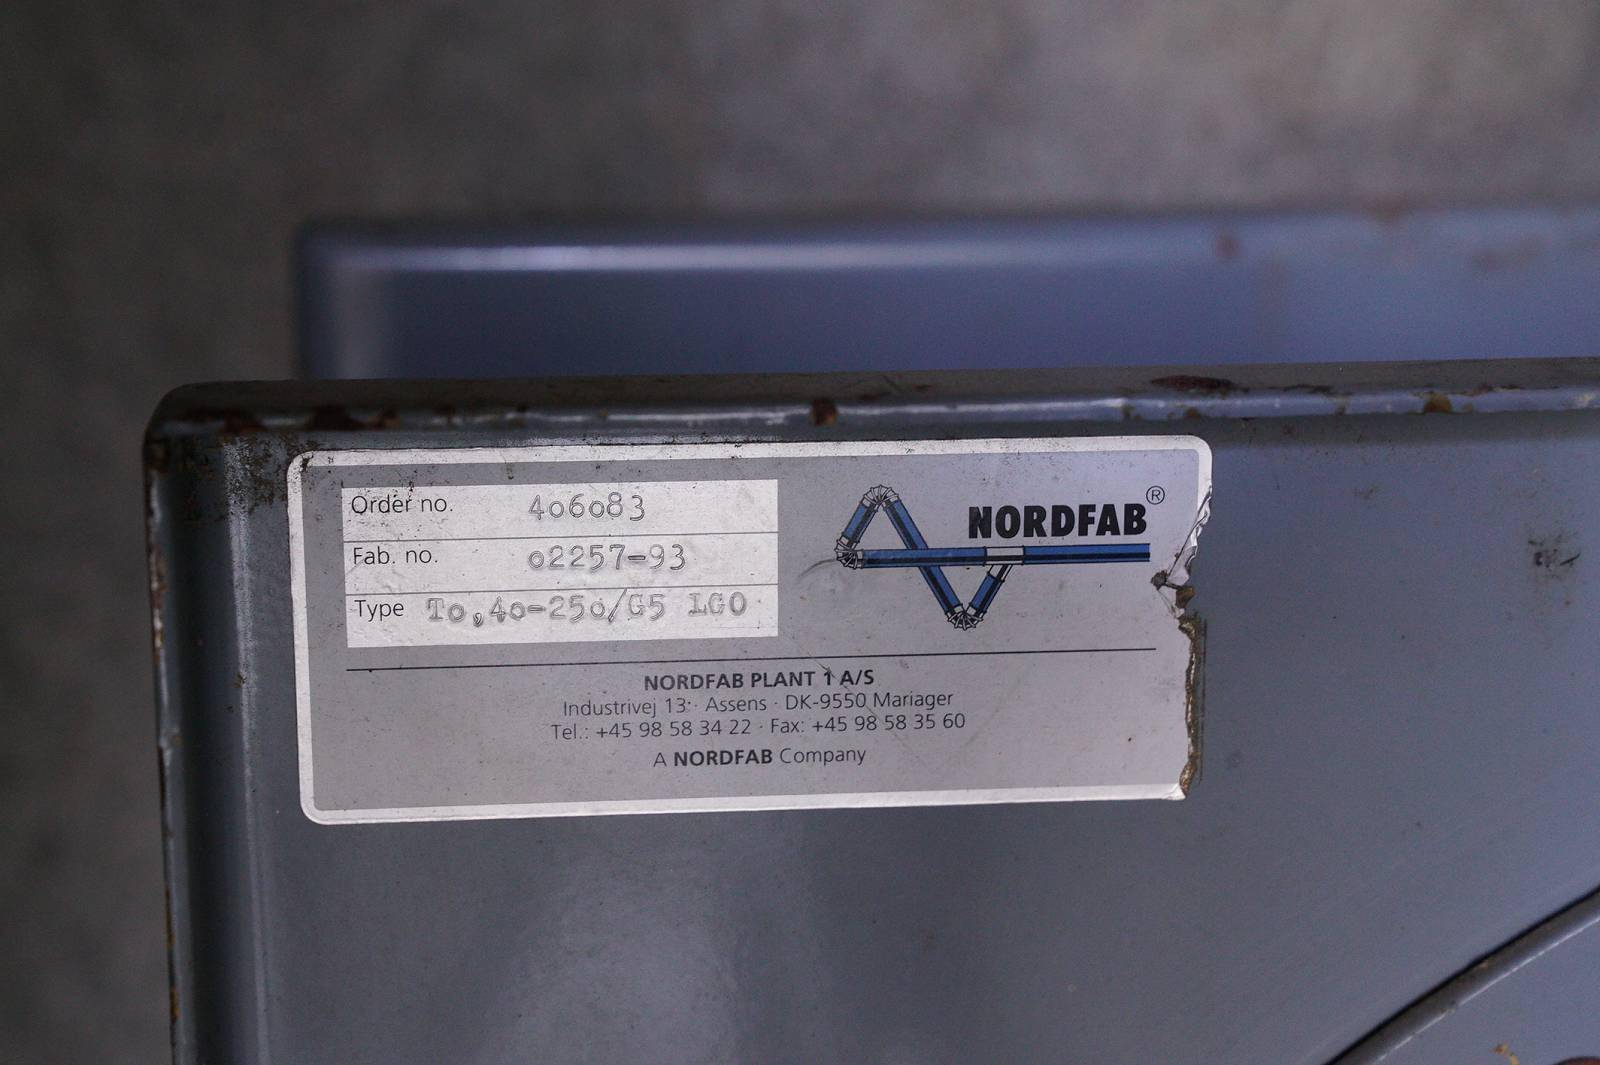 Auction » NORDFAB To 40-25o/G5 LG0